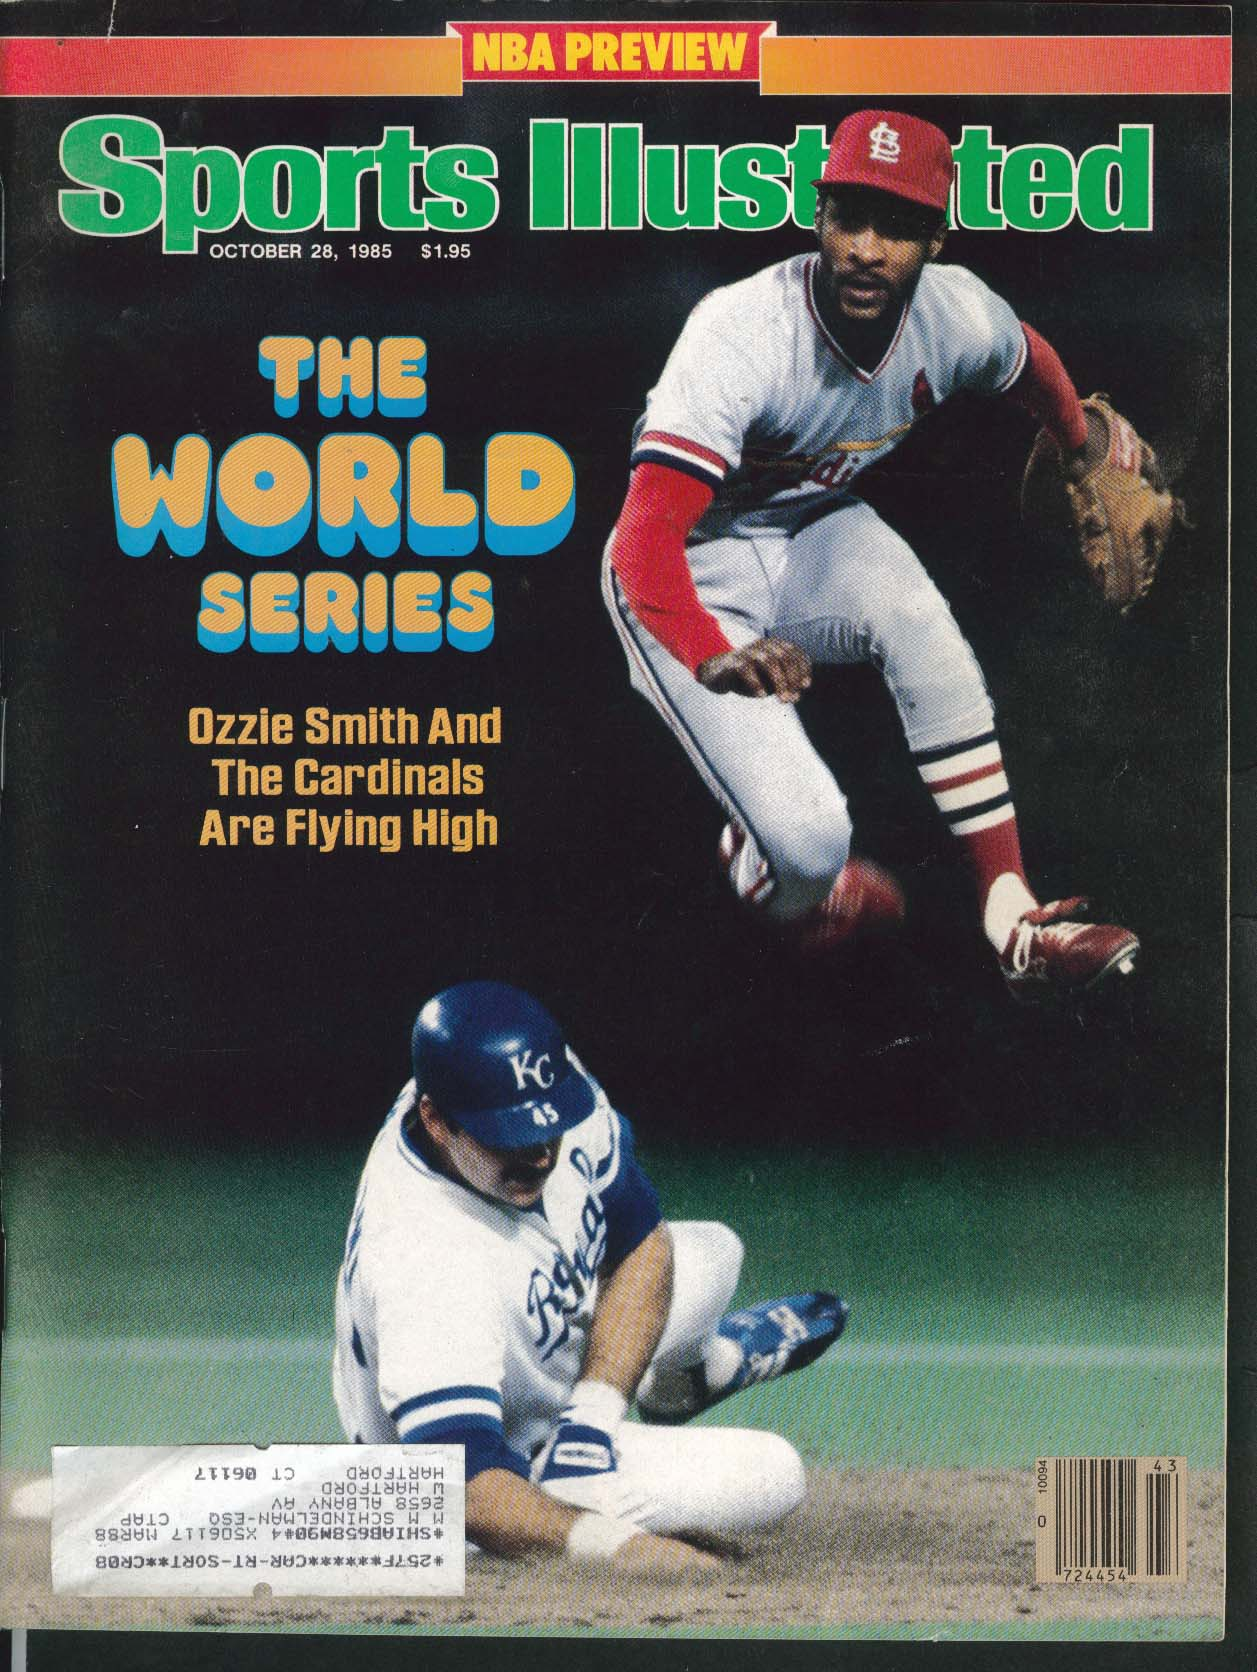 SPORTS ILLUSTRATED Ozzie Smith World Series Patrick Ewing NBA 10/28 1985